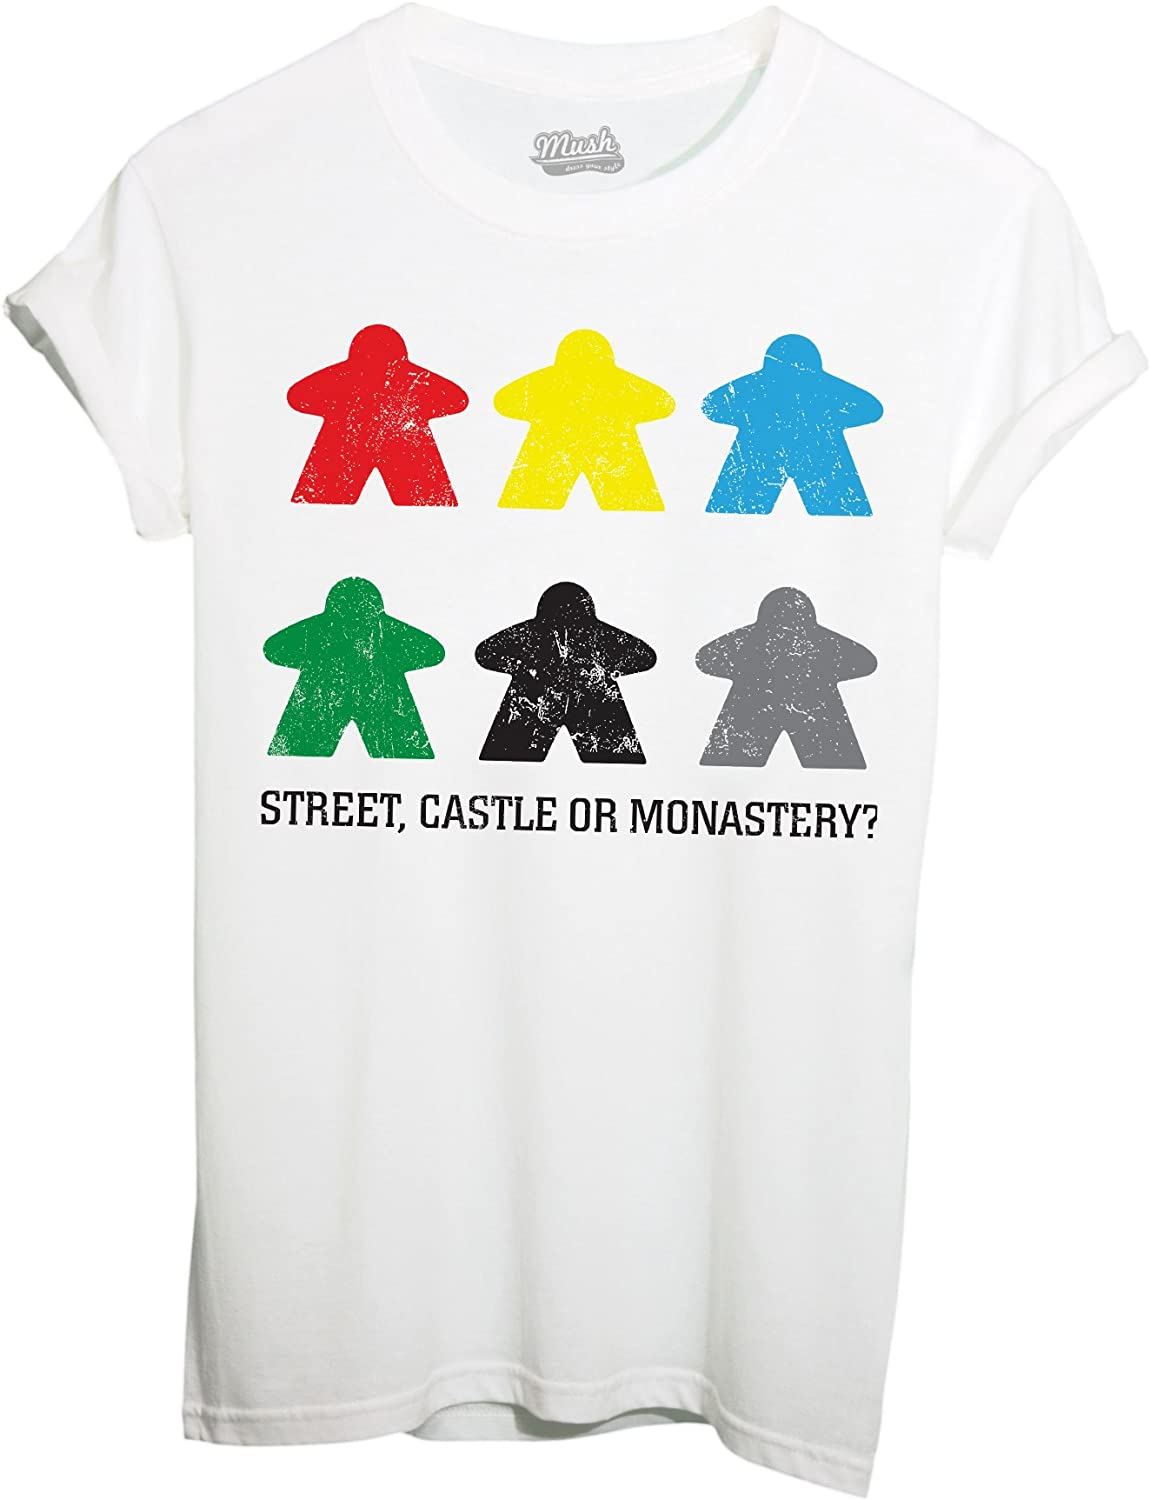 IMAGE Camiseta Carcassonne Meeples Games by Dress Your Style, Blanco: Amazon.es: Deportes y aire libre